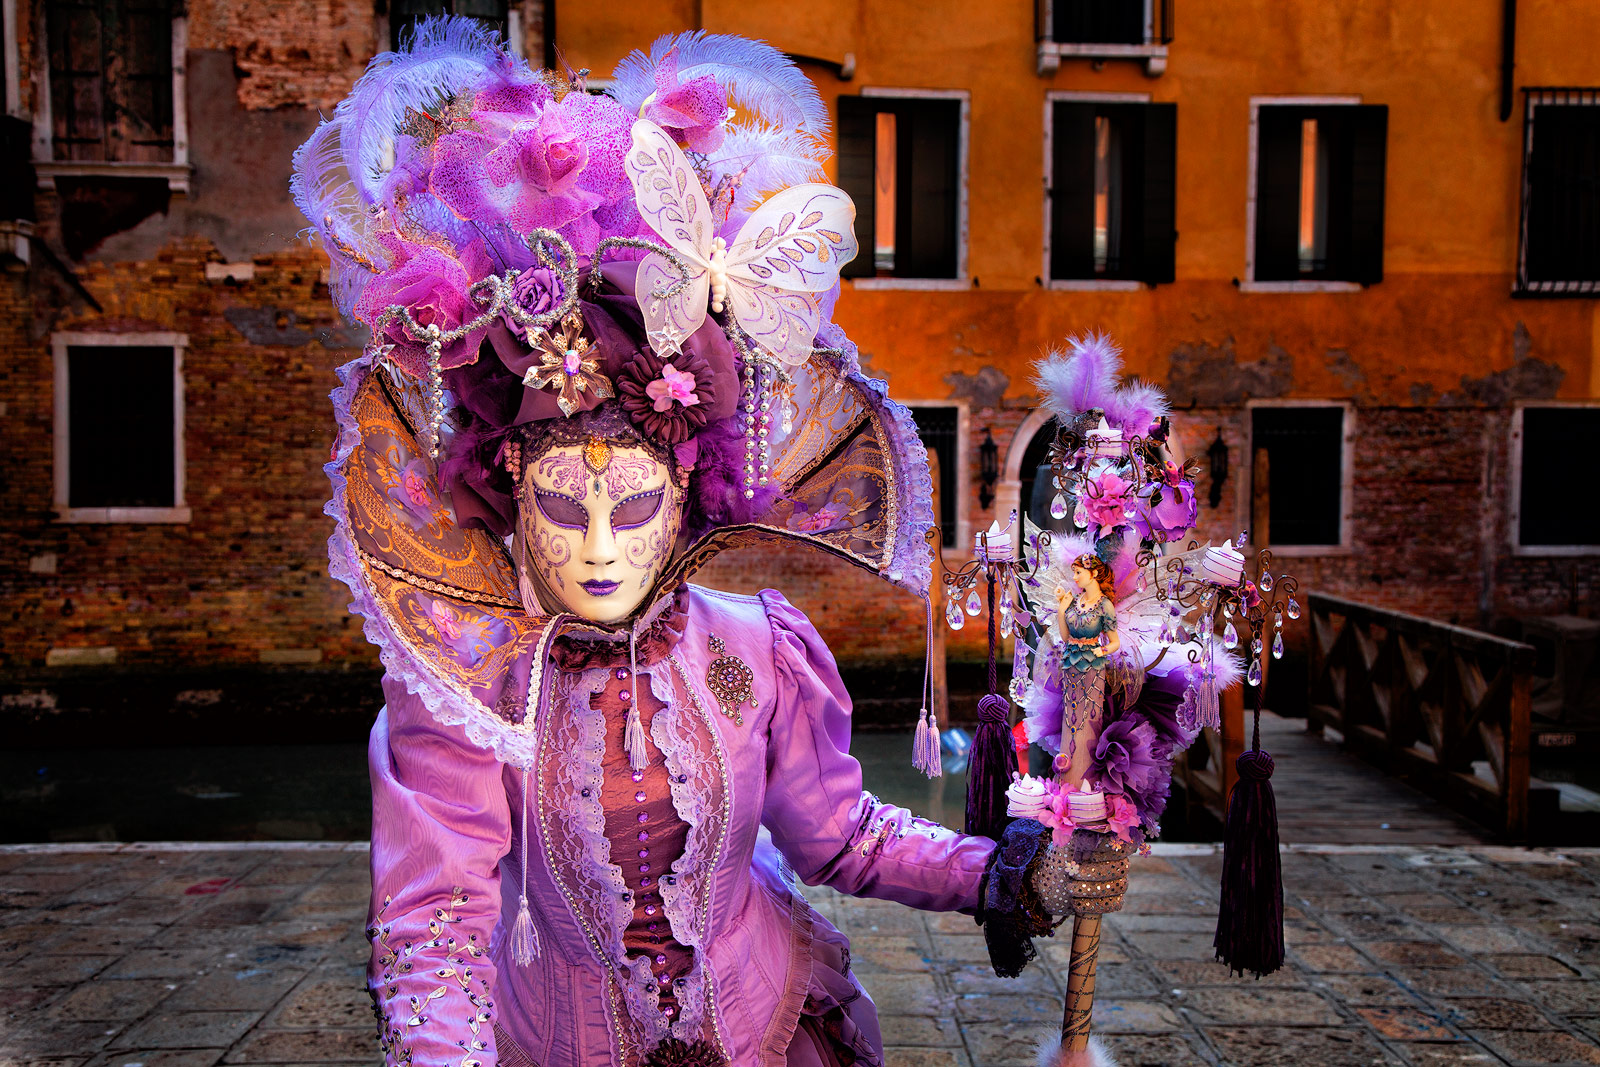 carnival, celebration, colorful, costume, europe, horizontal, italy, mask, party, purple, venice, photo